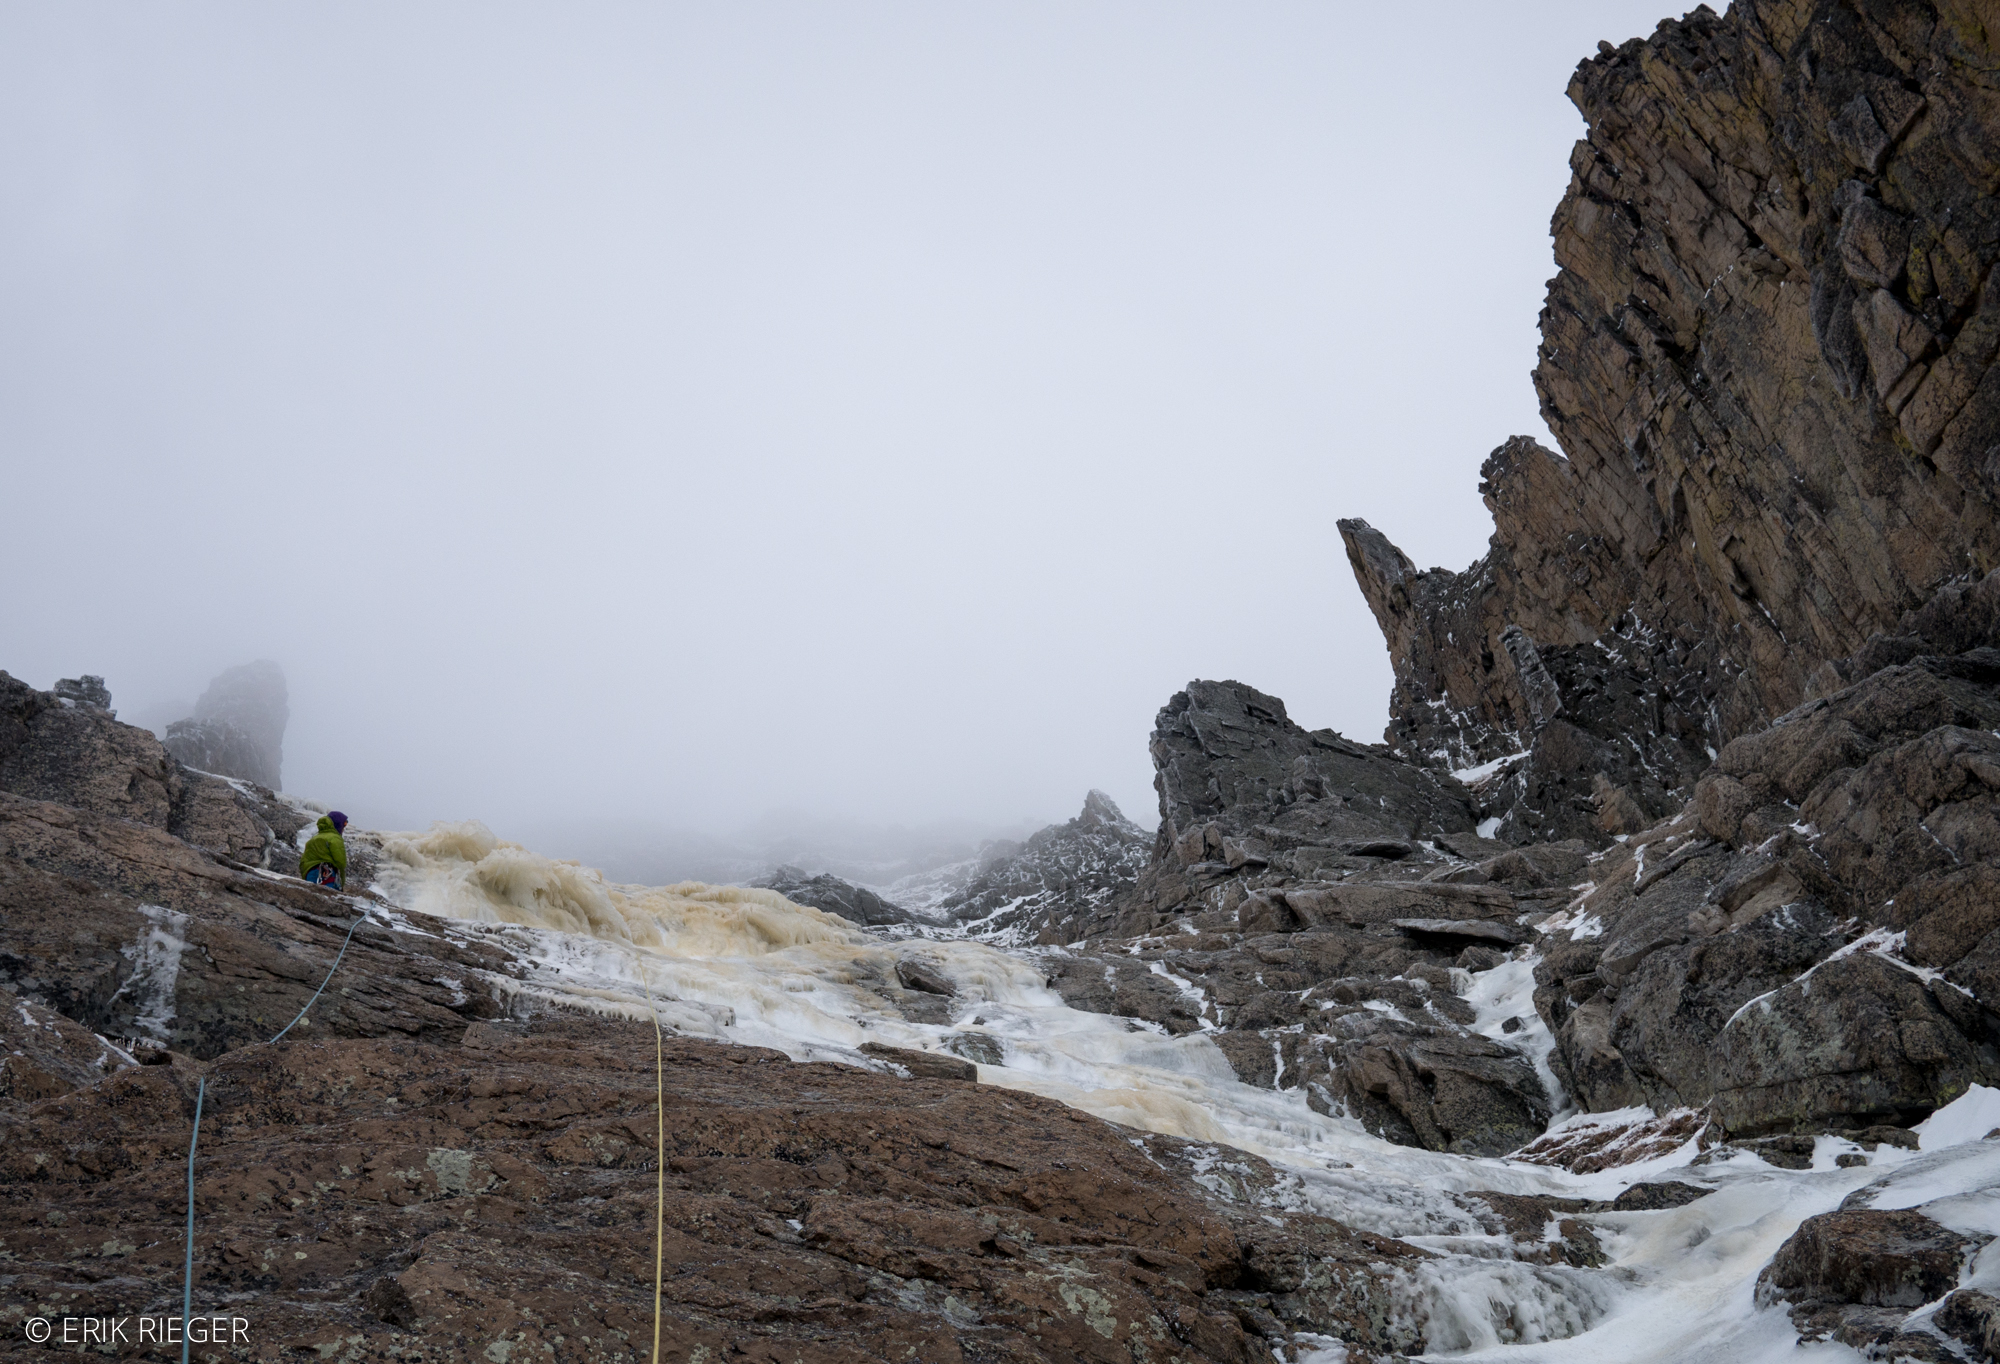 Climbing moderate and thick ice above the steep smear.